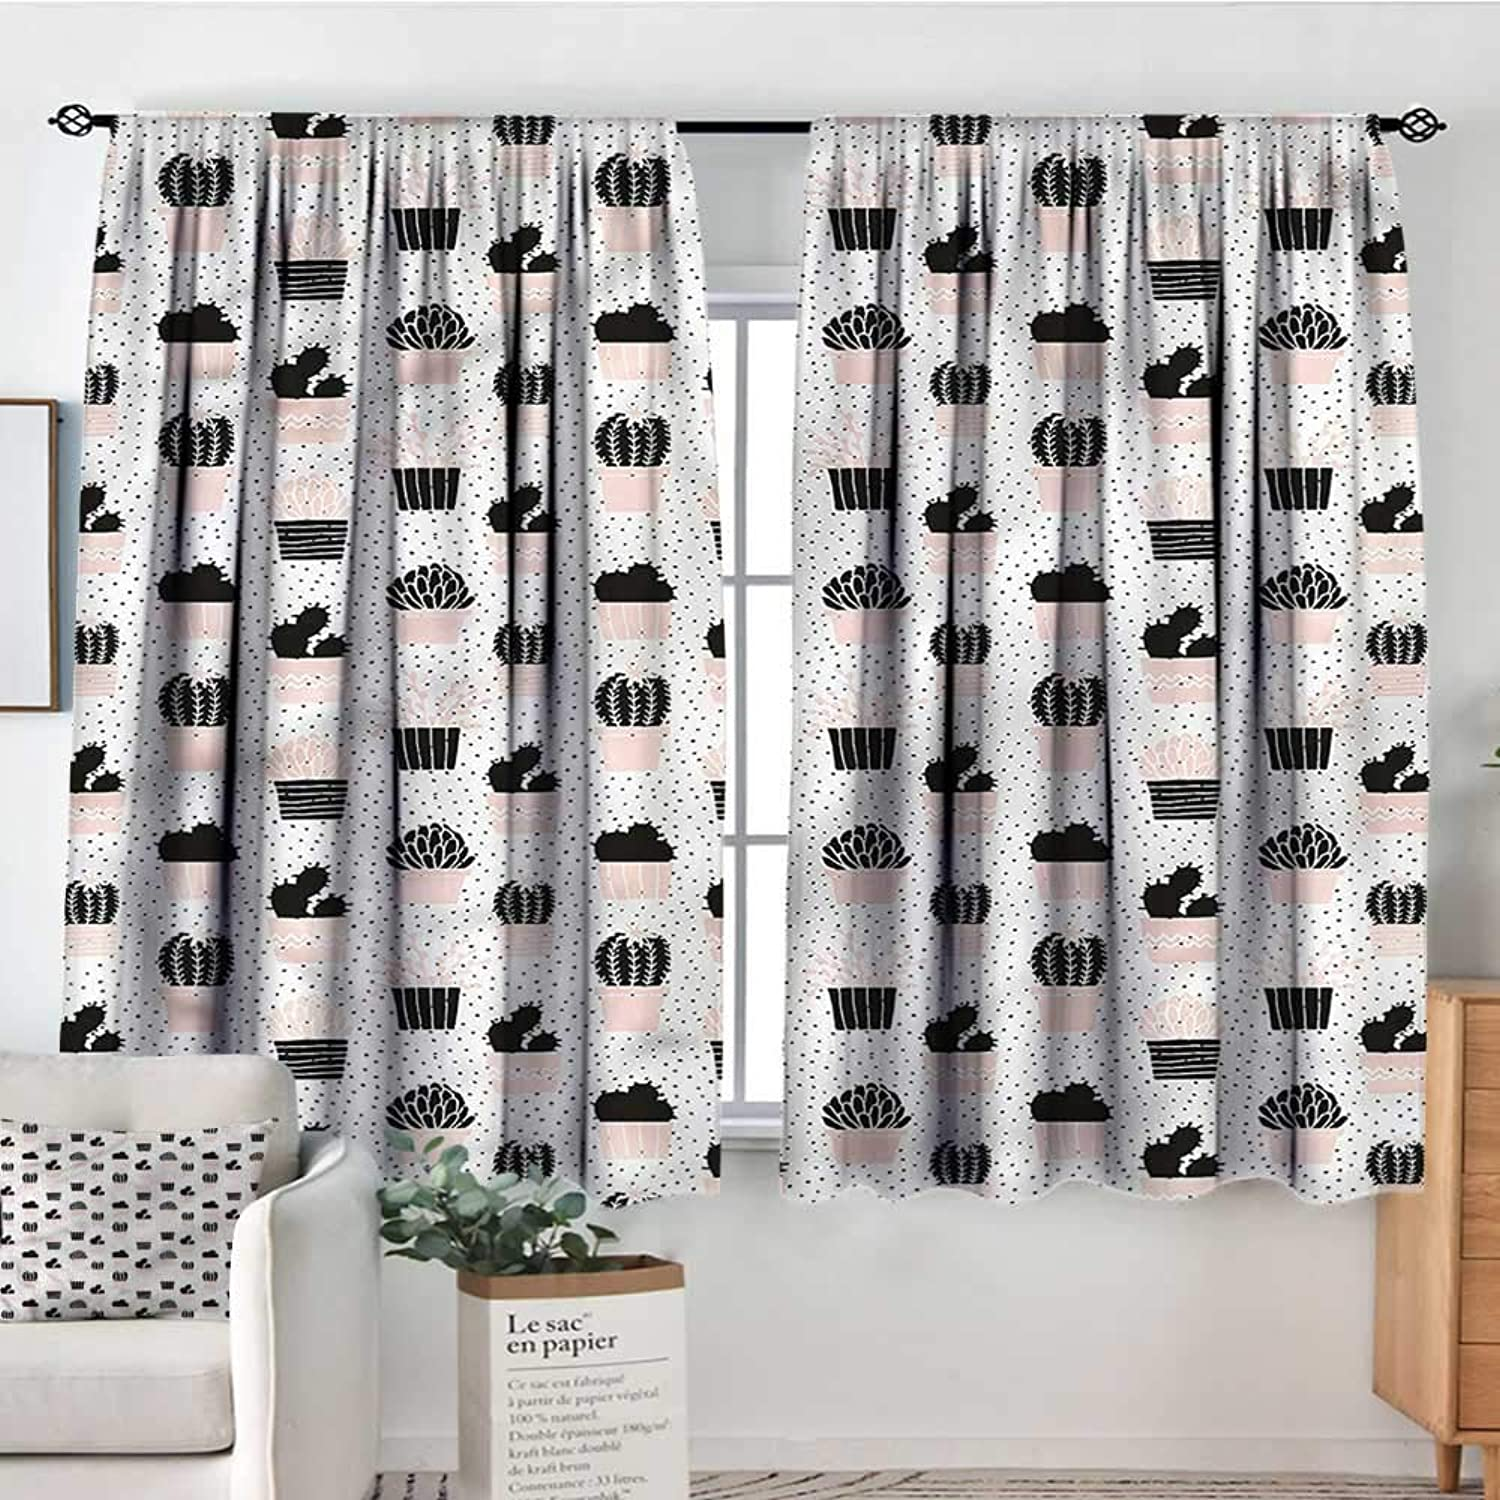 RenteriaDecor Cactus,Rod Pocket Indo Curtain Foliage Silhouettes 52 x63  Curtains for Kids' Room